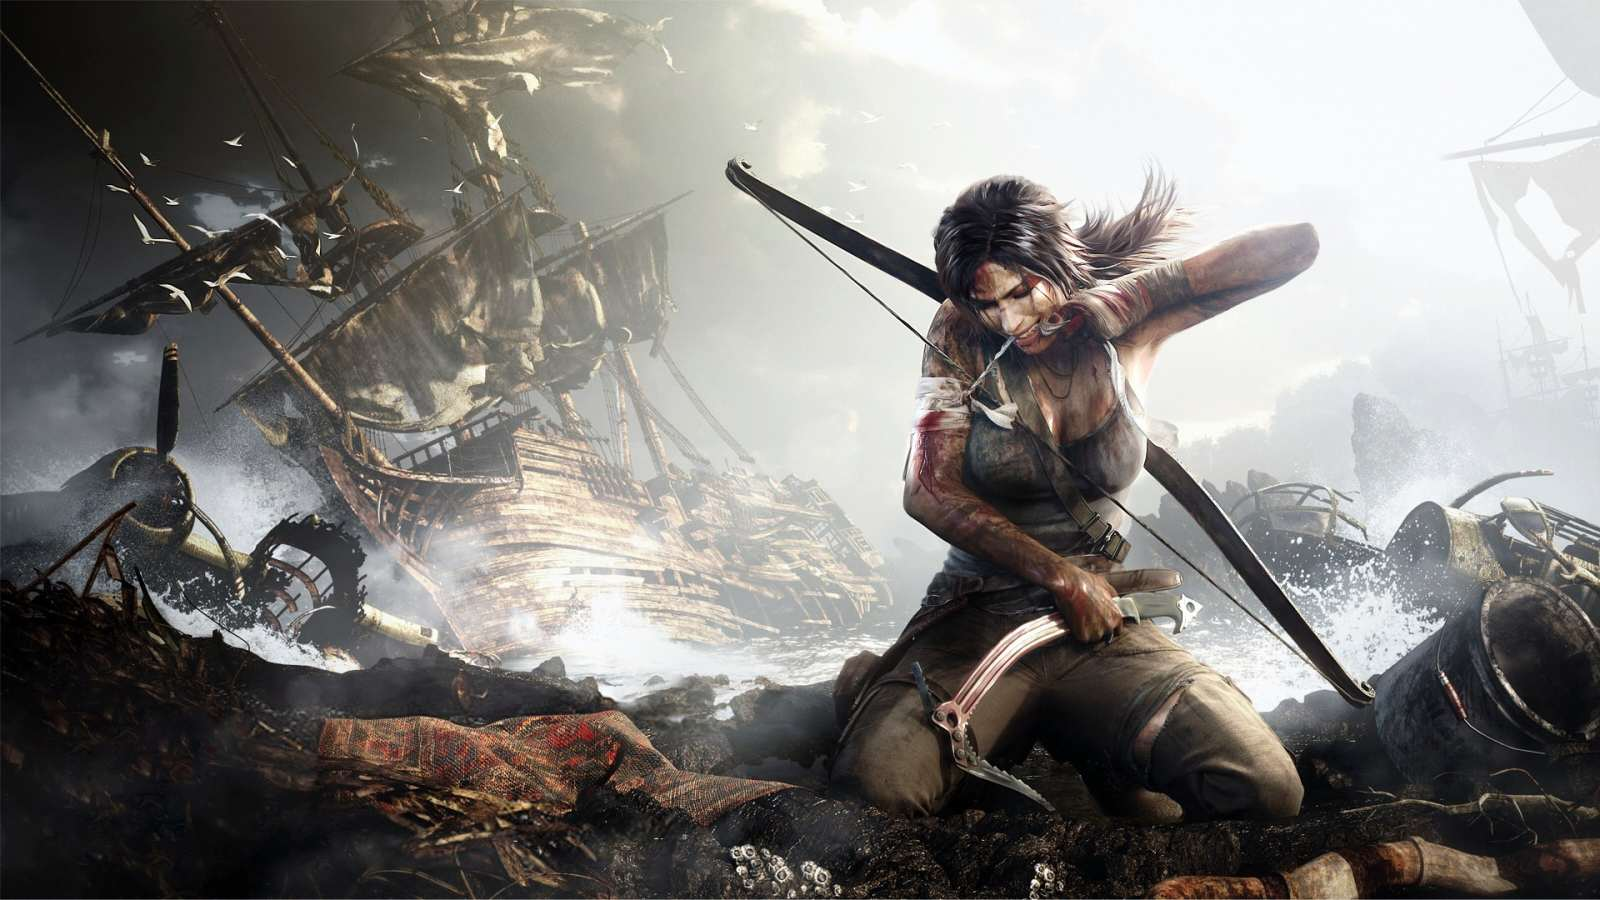 Tomb Raider Actress Alicia Vikander Speaks Out About Her New Role 2013 tomb raider game wallpaper for 1600x900 hdtv 9 502